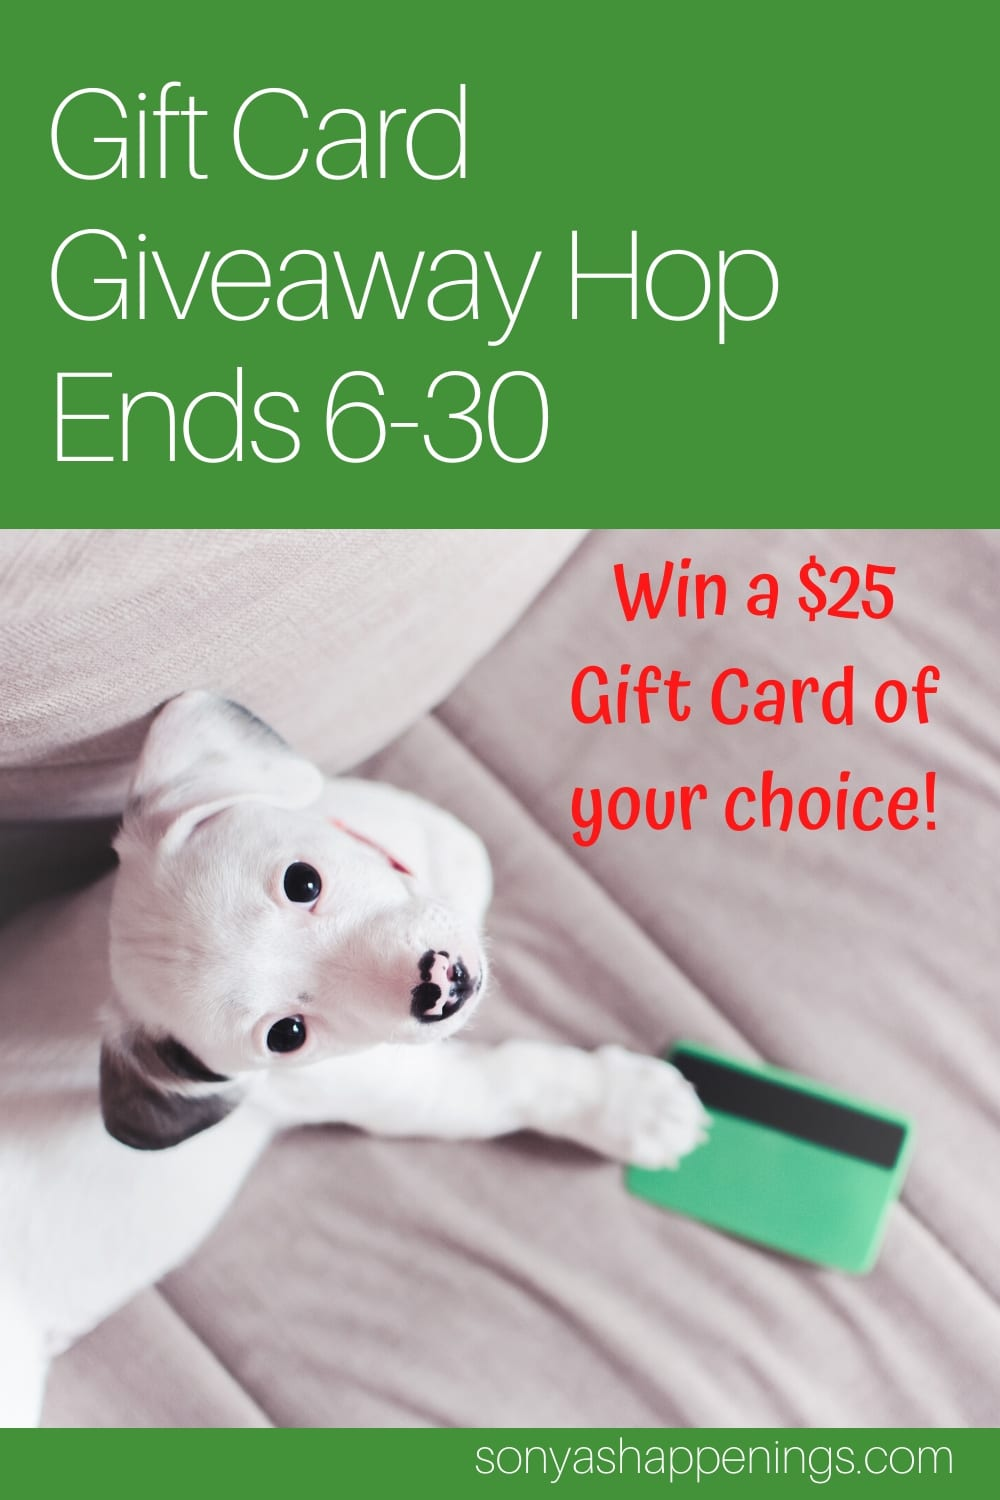 Win a $25 gift card (your choice) #GiftCardHop ~ Giveaway hop ends 6-30